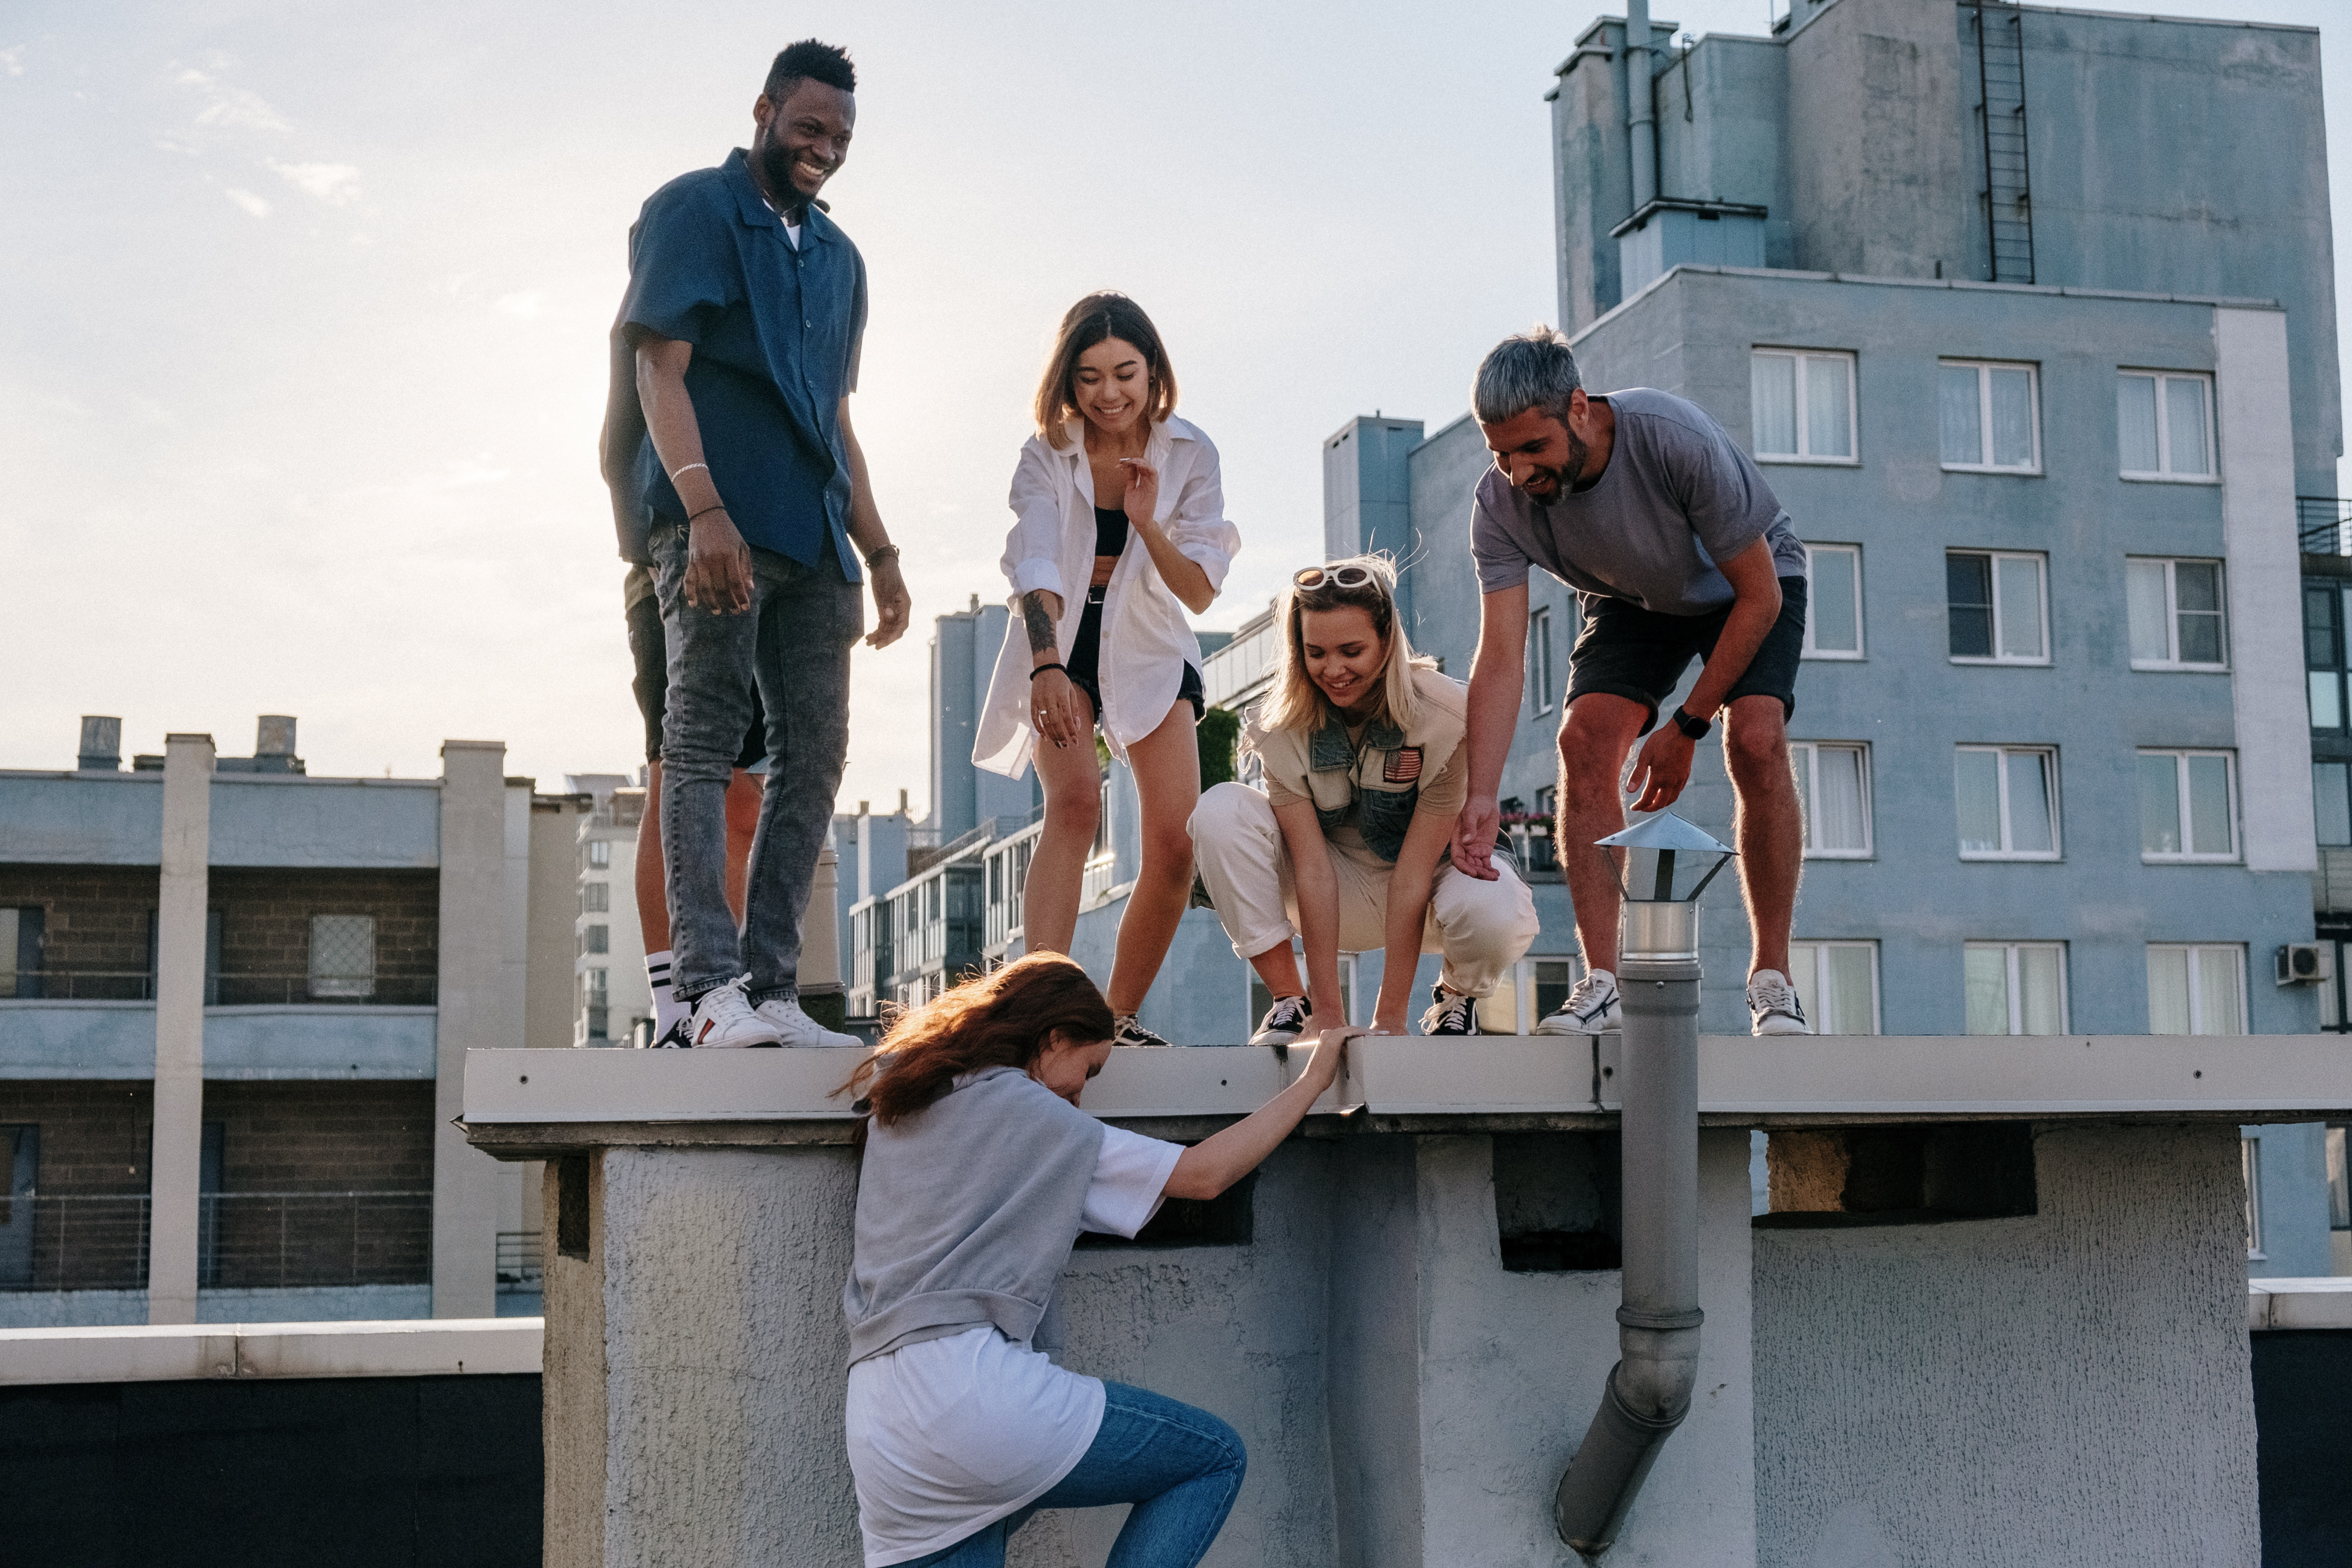 Image of a group of 5 multi ethnic and attractive young men and women. They are all helping one climb to where they are on the roof of a building.